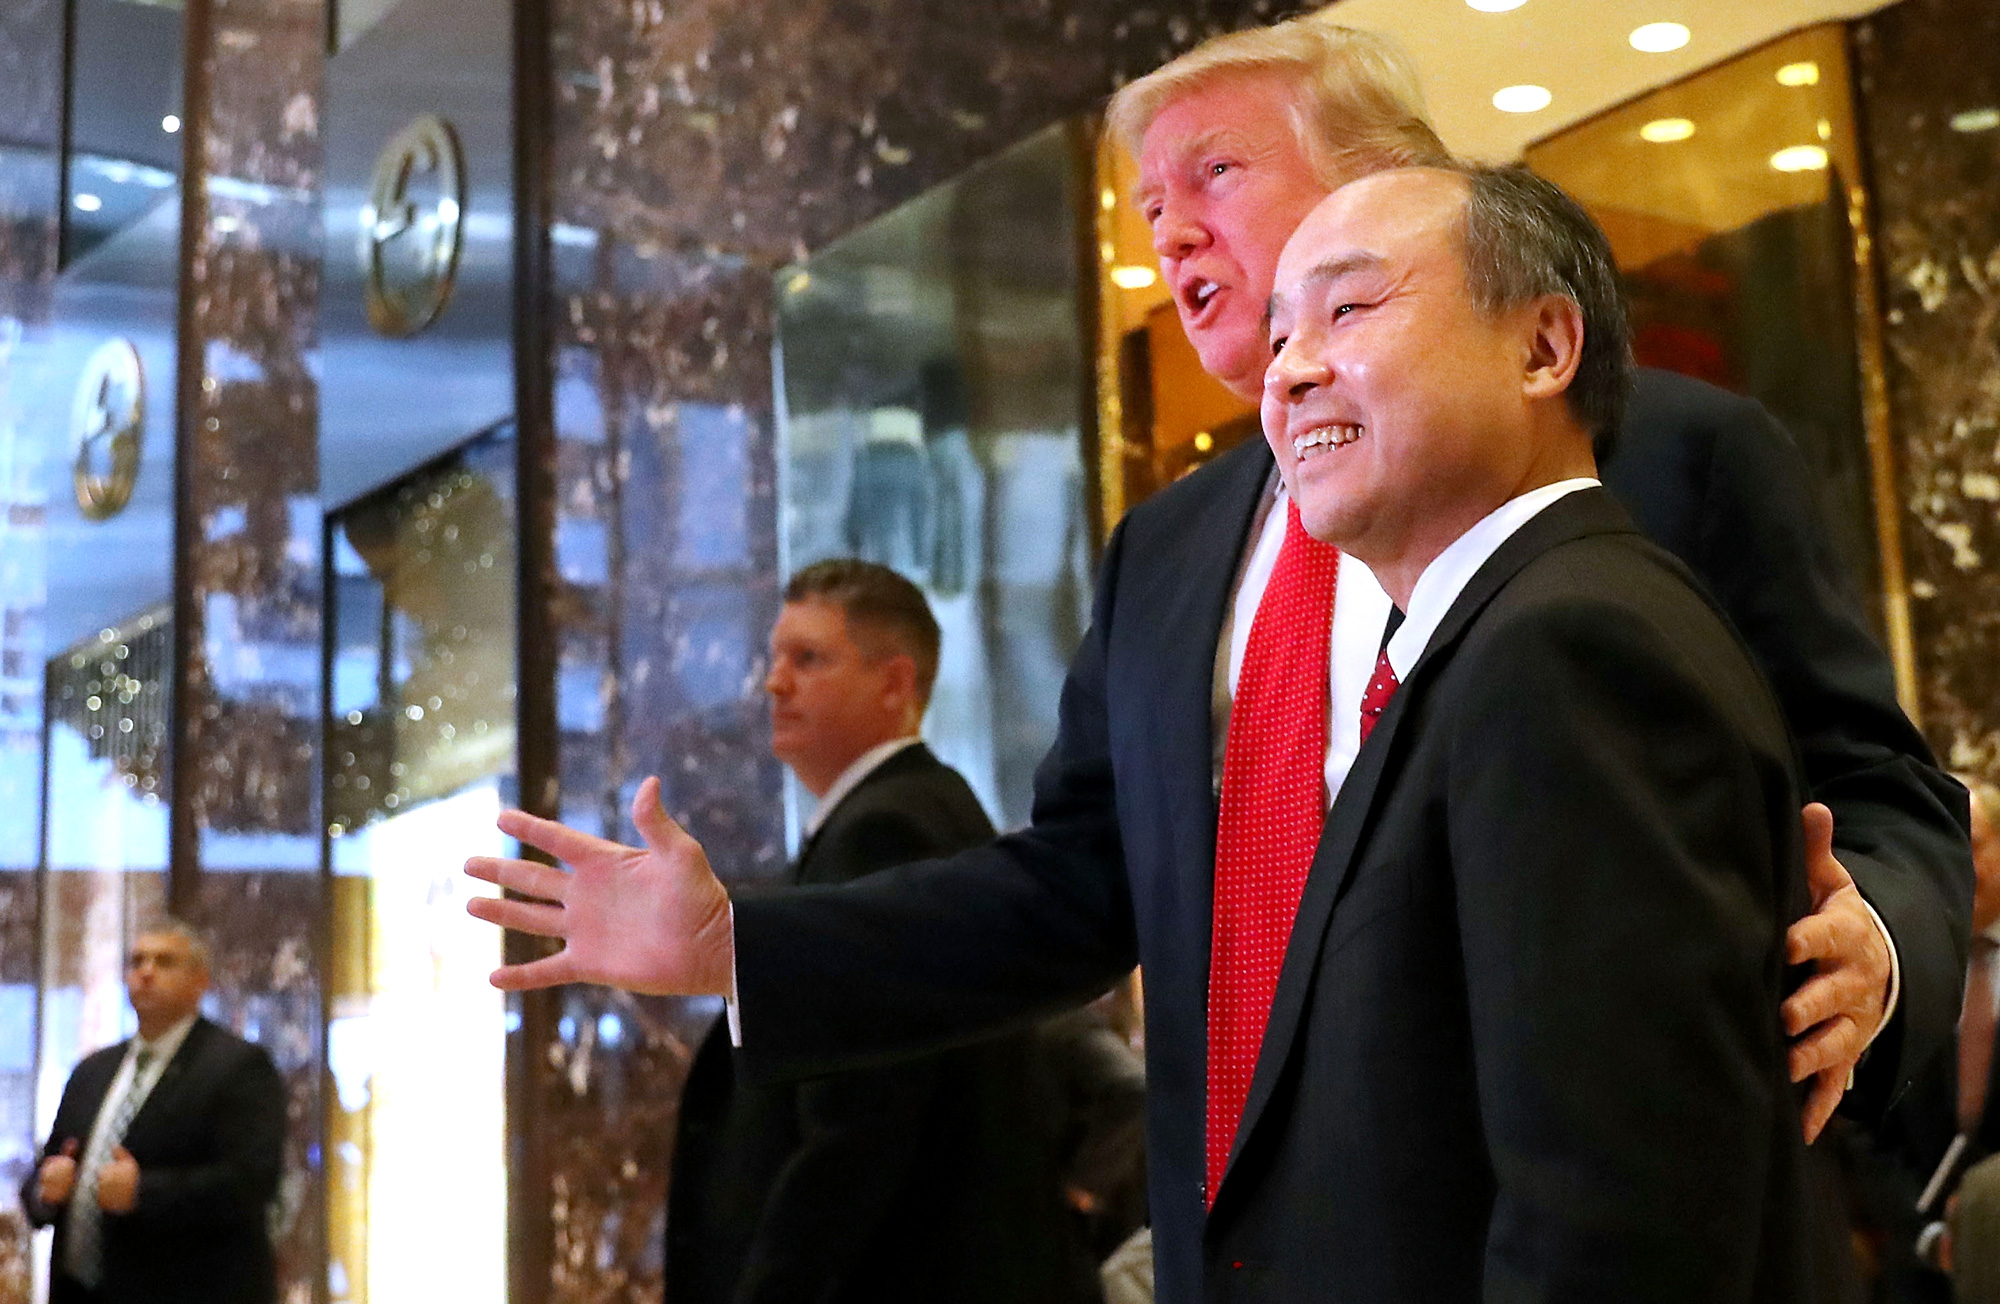 The president-elect hosted Softbank CEO Masayoshi Son at Trump Tower for the announcement that Son's company would make a huge investment in expanding its U.S. operations.